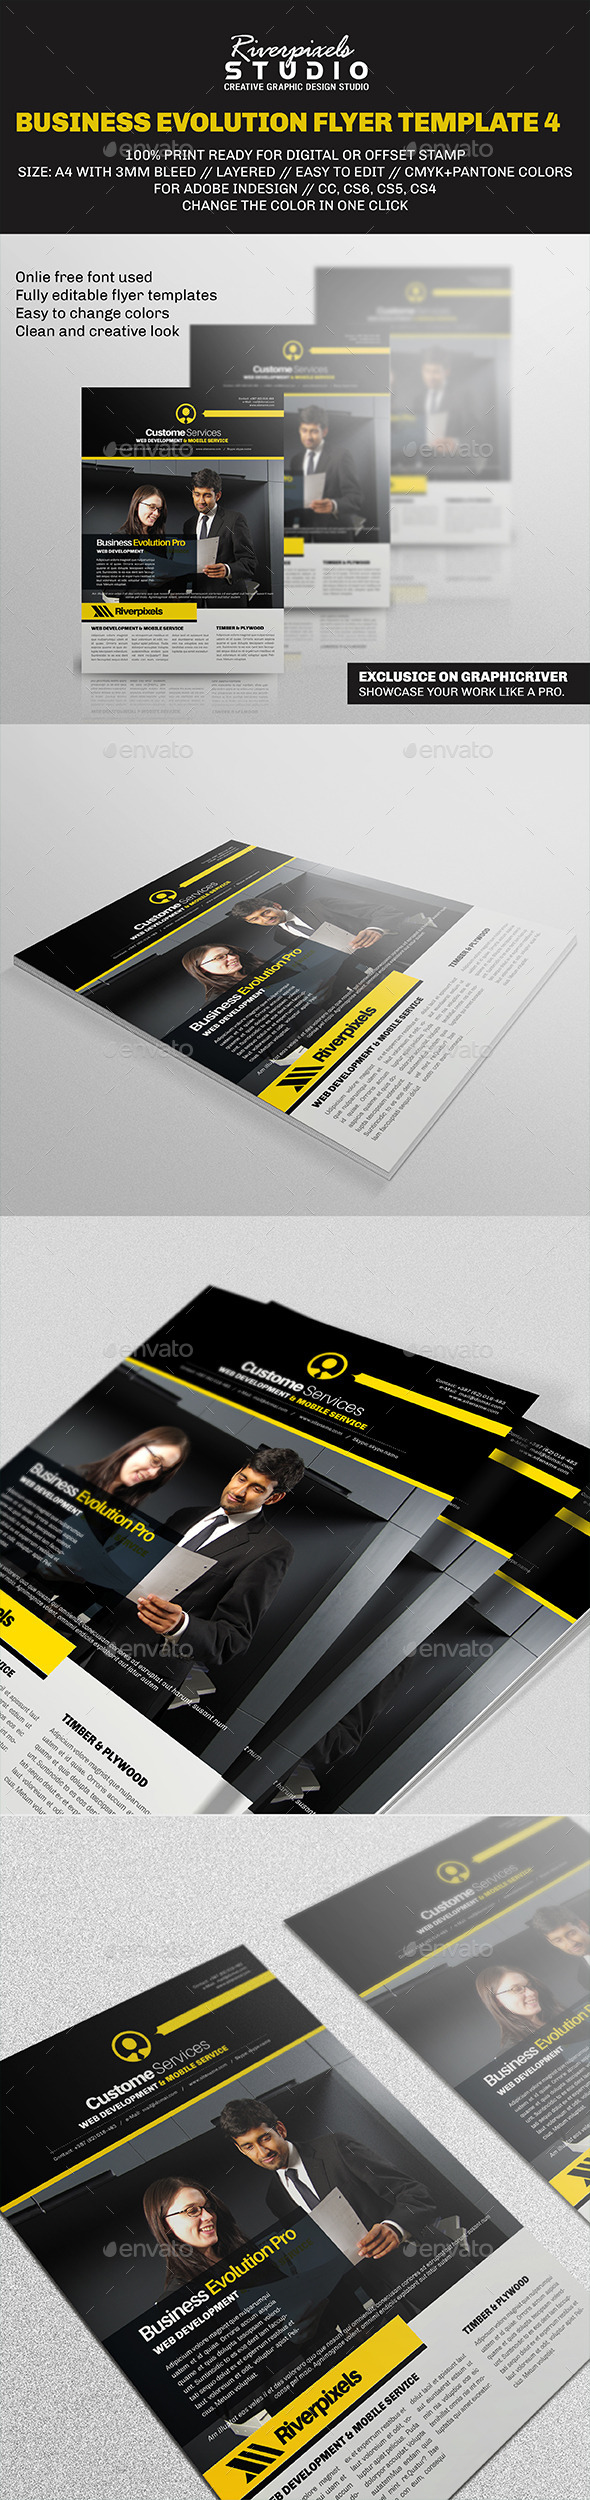 Business Evolution Flyer Template IV - Corporate Flyers